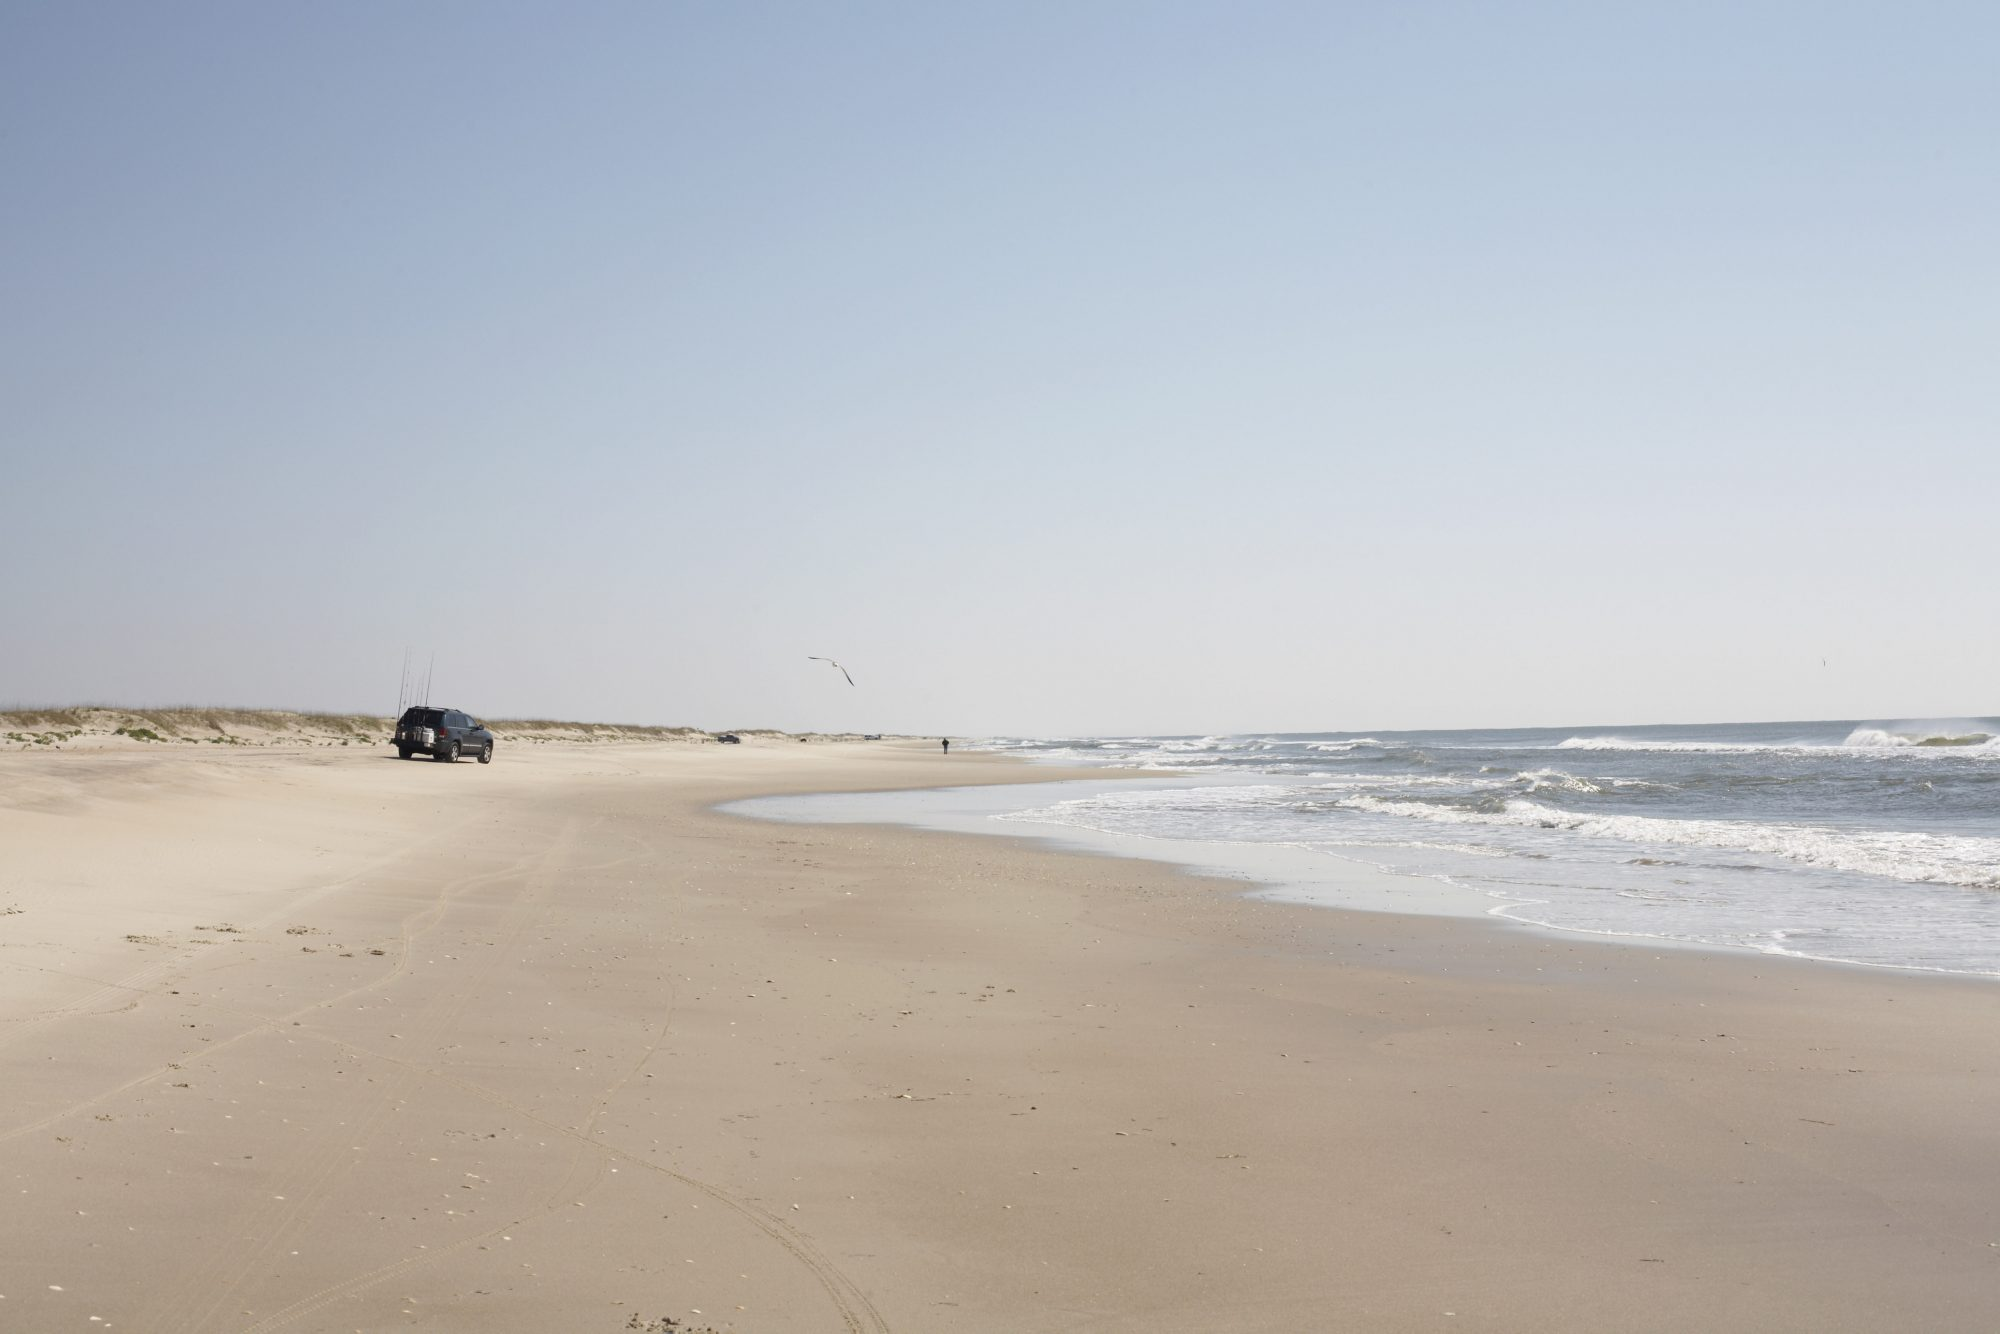 Long stretches of shoreline between Carova, North Carolina, and the Hatteras Inlet — plus parts of Ocracoke Island — are open to drivers with off-road vehicle permits either seasonally or year-round. During the winter, you can even drive at night on the beaches of the national seashore, where beach bonfires are permitted. The northern end of the Outer Banks is especially remote.